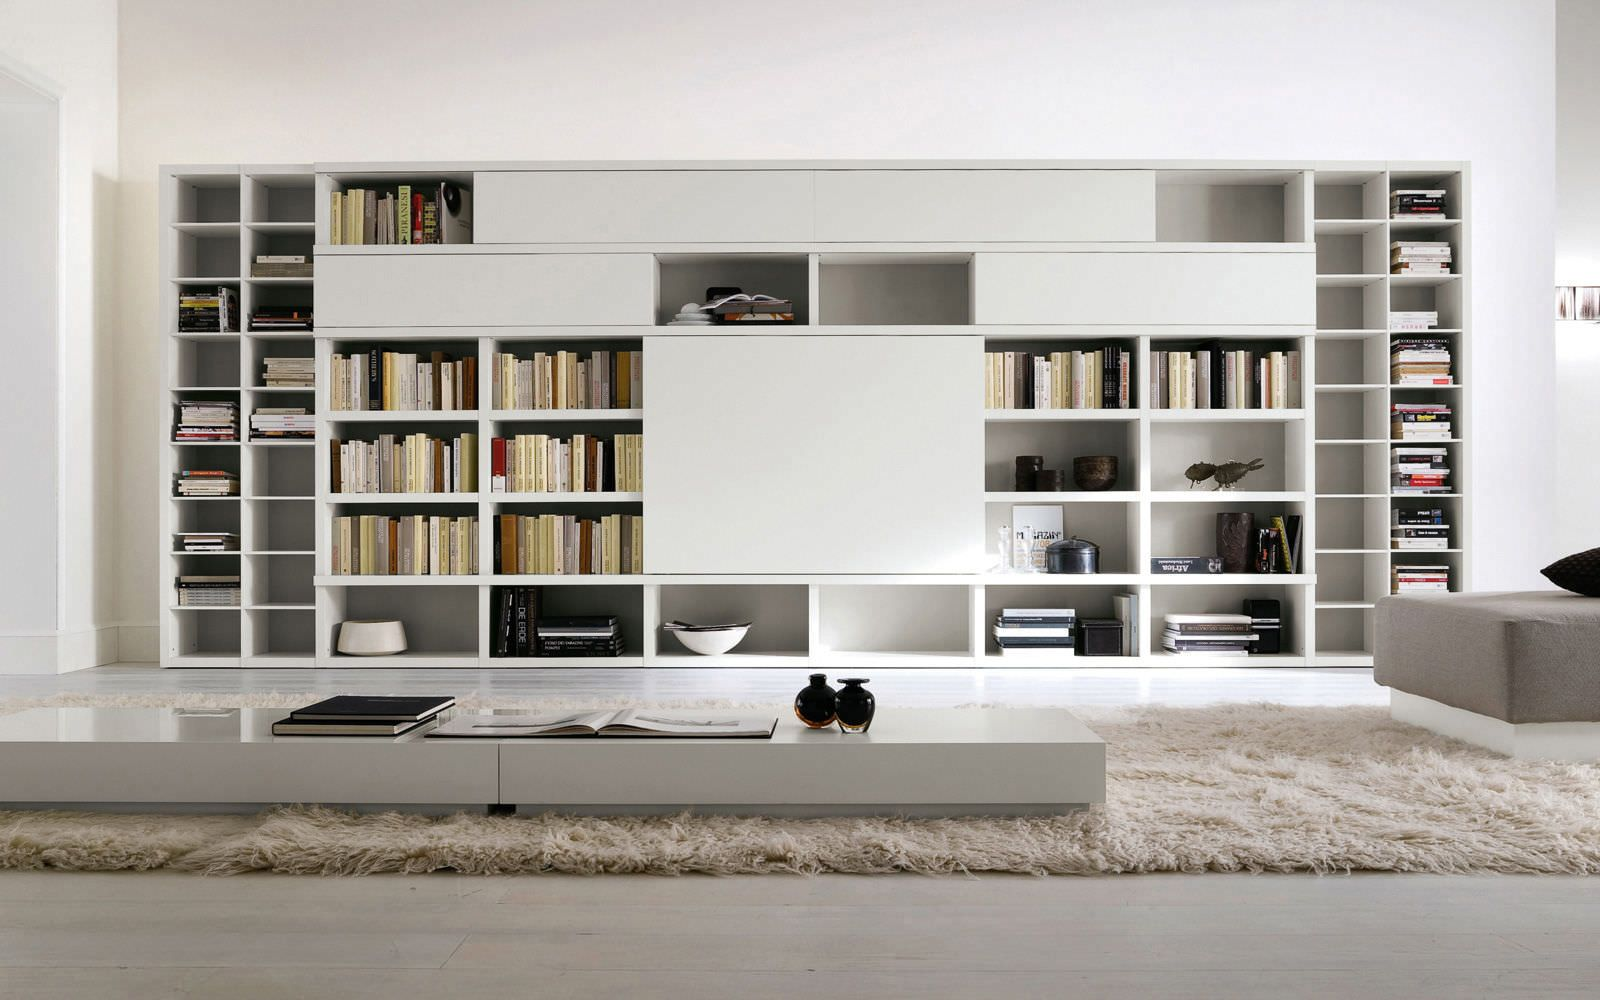 cool home interior book storage within cool library room ideas  - astonishing furniture wonderful white lacquered contemporary big bookcasedesign cool home interior book storage cool bookcases perfect for smartstorage